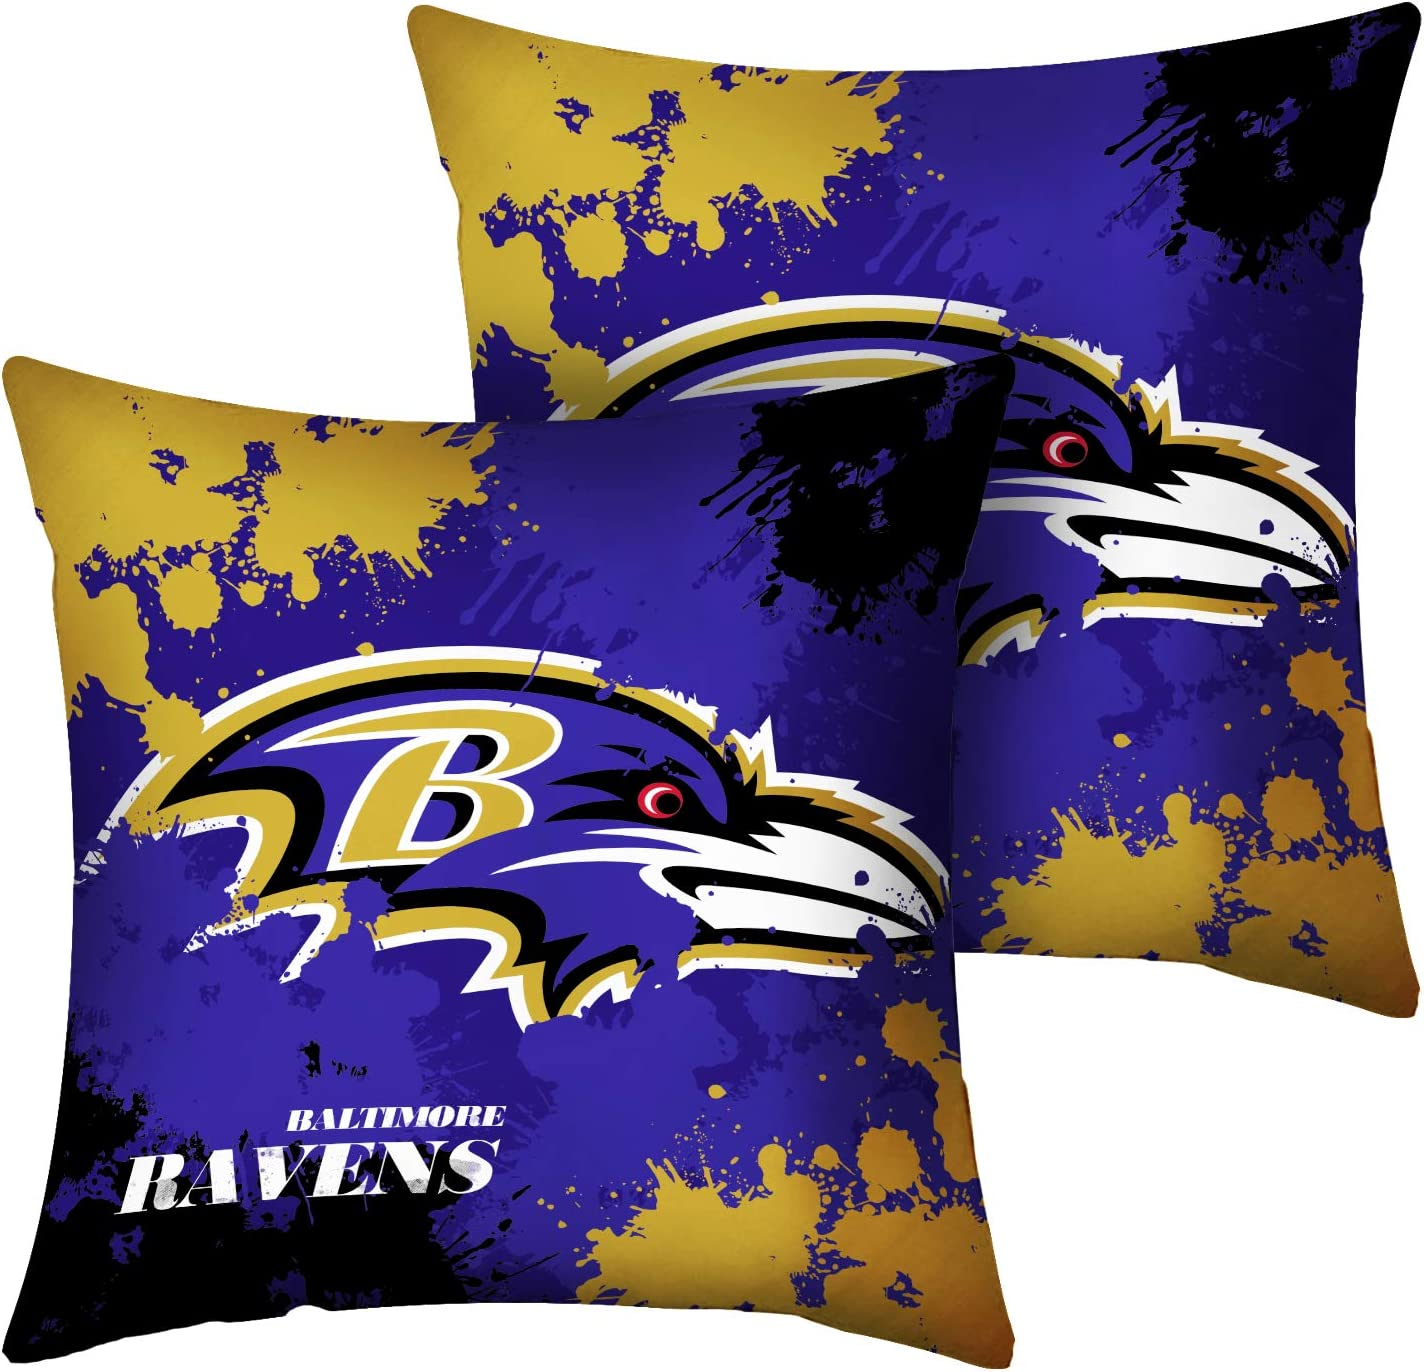 18 x 18, Green Bay Packers CANDICE Football Team Super Bowl Throw Pillow Covers Pillow Cases Decorative Pillowcase Protecter with Zipper 2 Pcs Without Insert